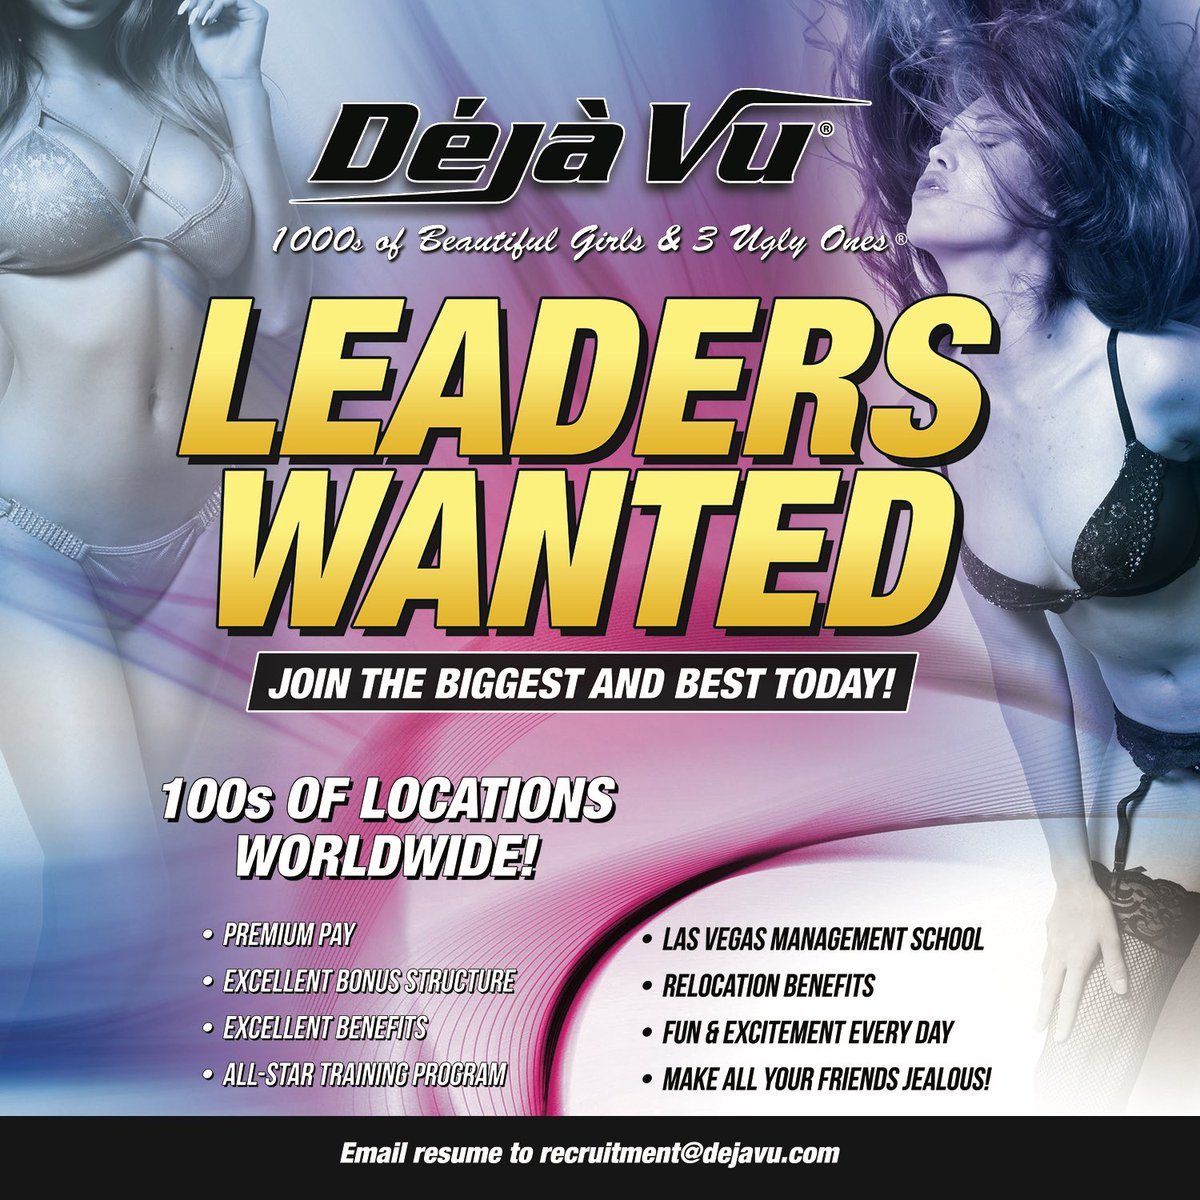 Leaders wanted! Apply online today! 💻😎 . . . #dejavu #party #nightlife #barscene #wow #hot #workout #instadaily #selfie #girlswithtattoos #girlswholikegirls #sexy #stripclub #dancer #gentlemen #showgirls #babes #weaimtoplease #simplythebest #drinks #shottime #getoutandlive